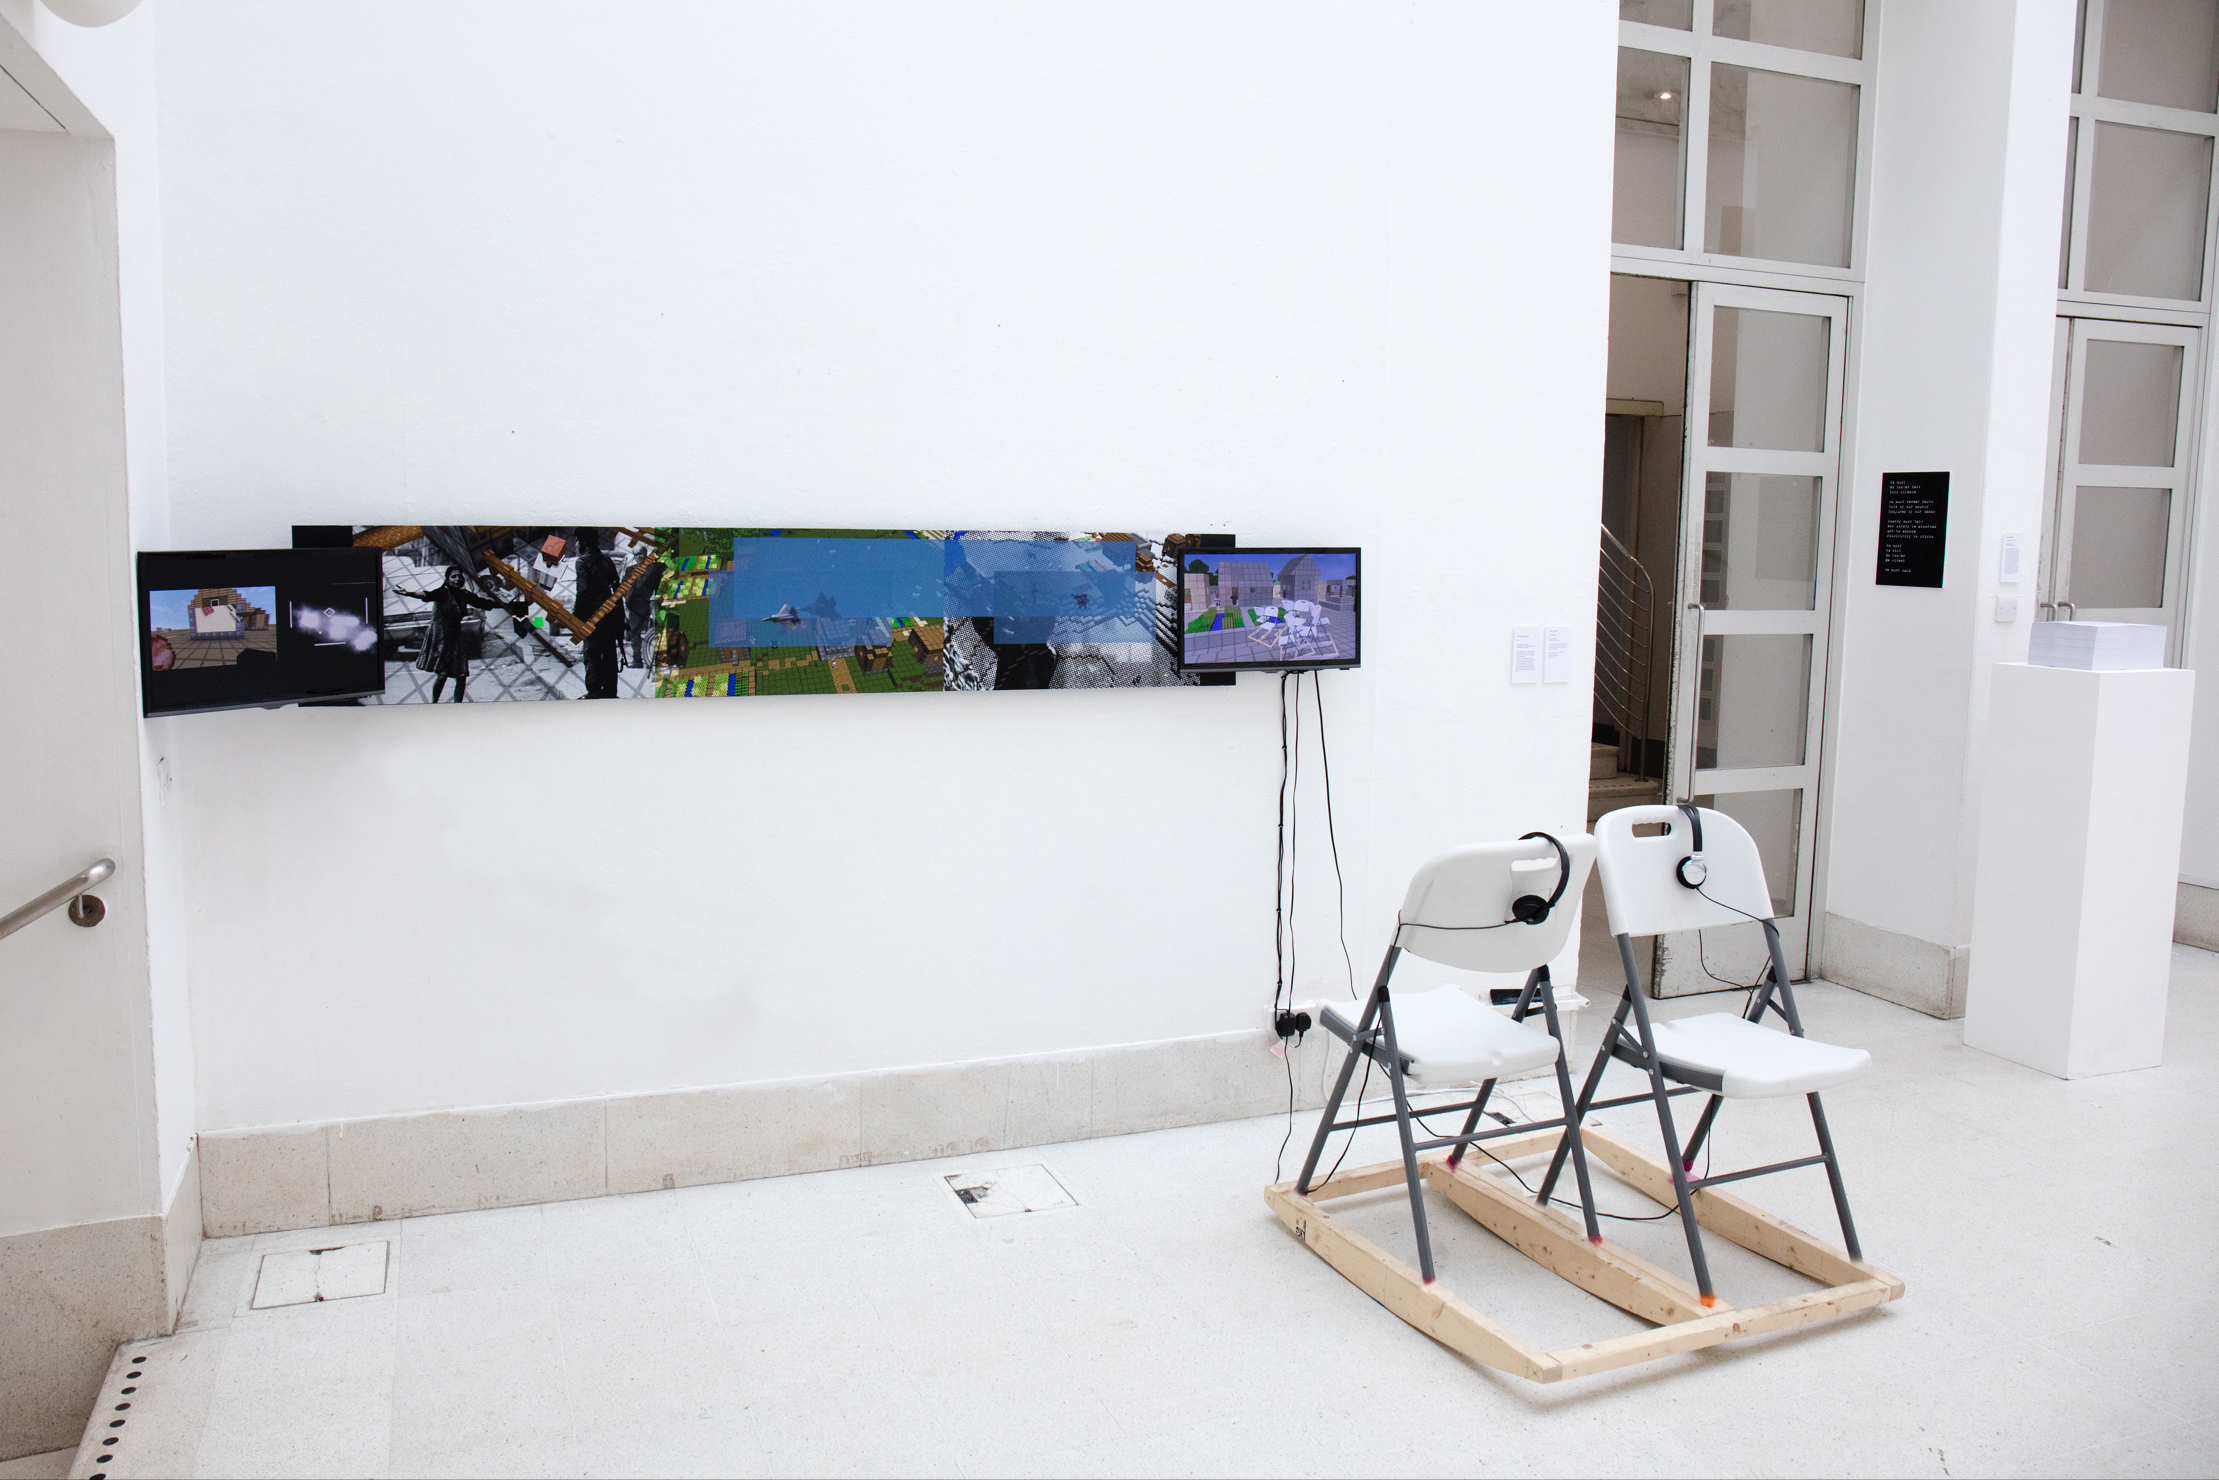 Crafting Memory Lane 2, The Odious Smell of Truth. 2017 Hockney Gallery, London